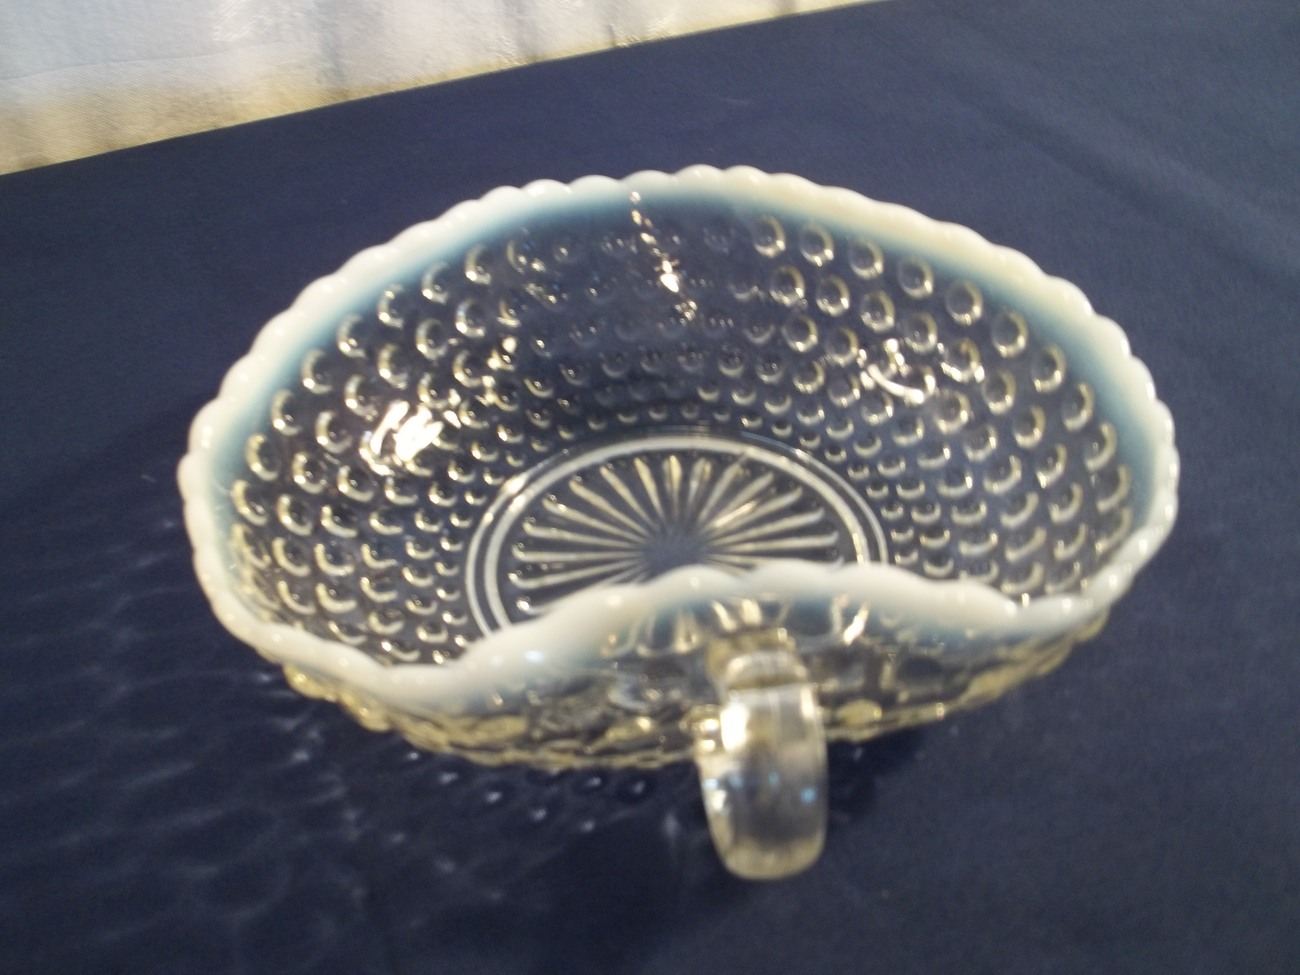 MOONSTONE HEART BONBON DISH WITH ONE HANDLE PRODUCED BY ANCHOR HOCKING 1940'S